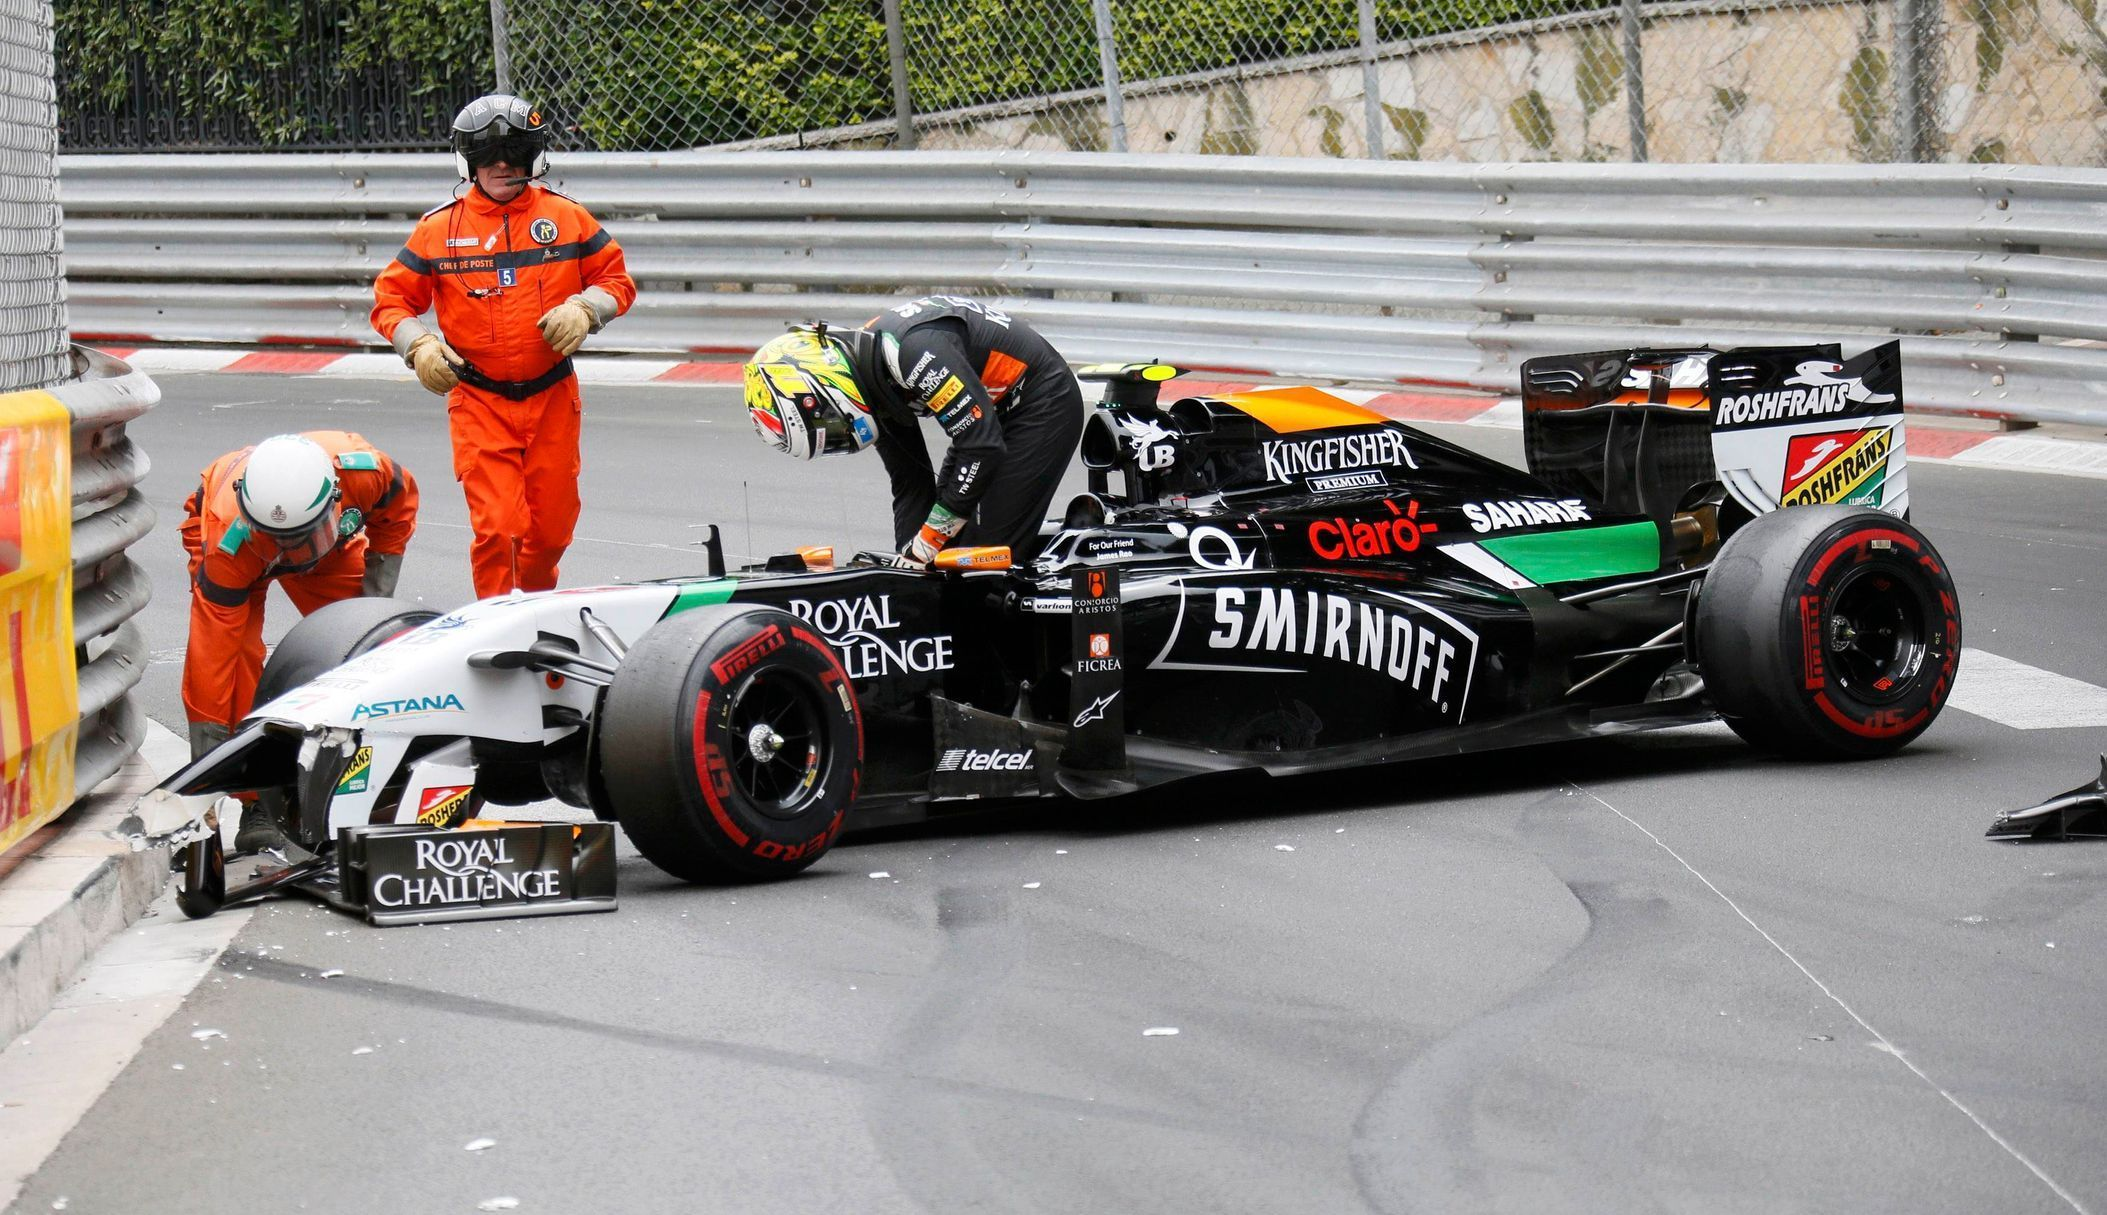 Force India Formula One driver Sergio Perez leaves his car after crashing at the start of the Monaco F1 Grand Prix in Monaco